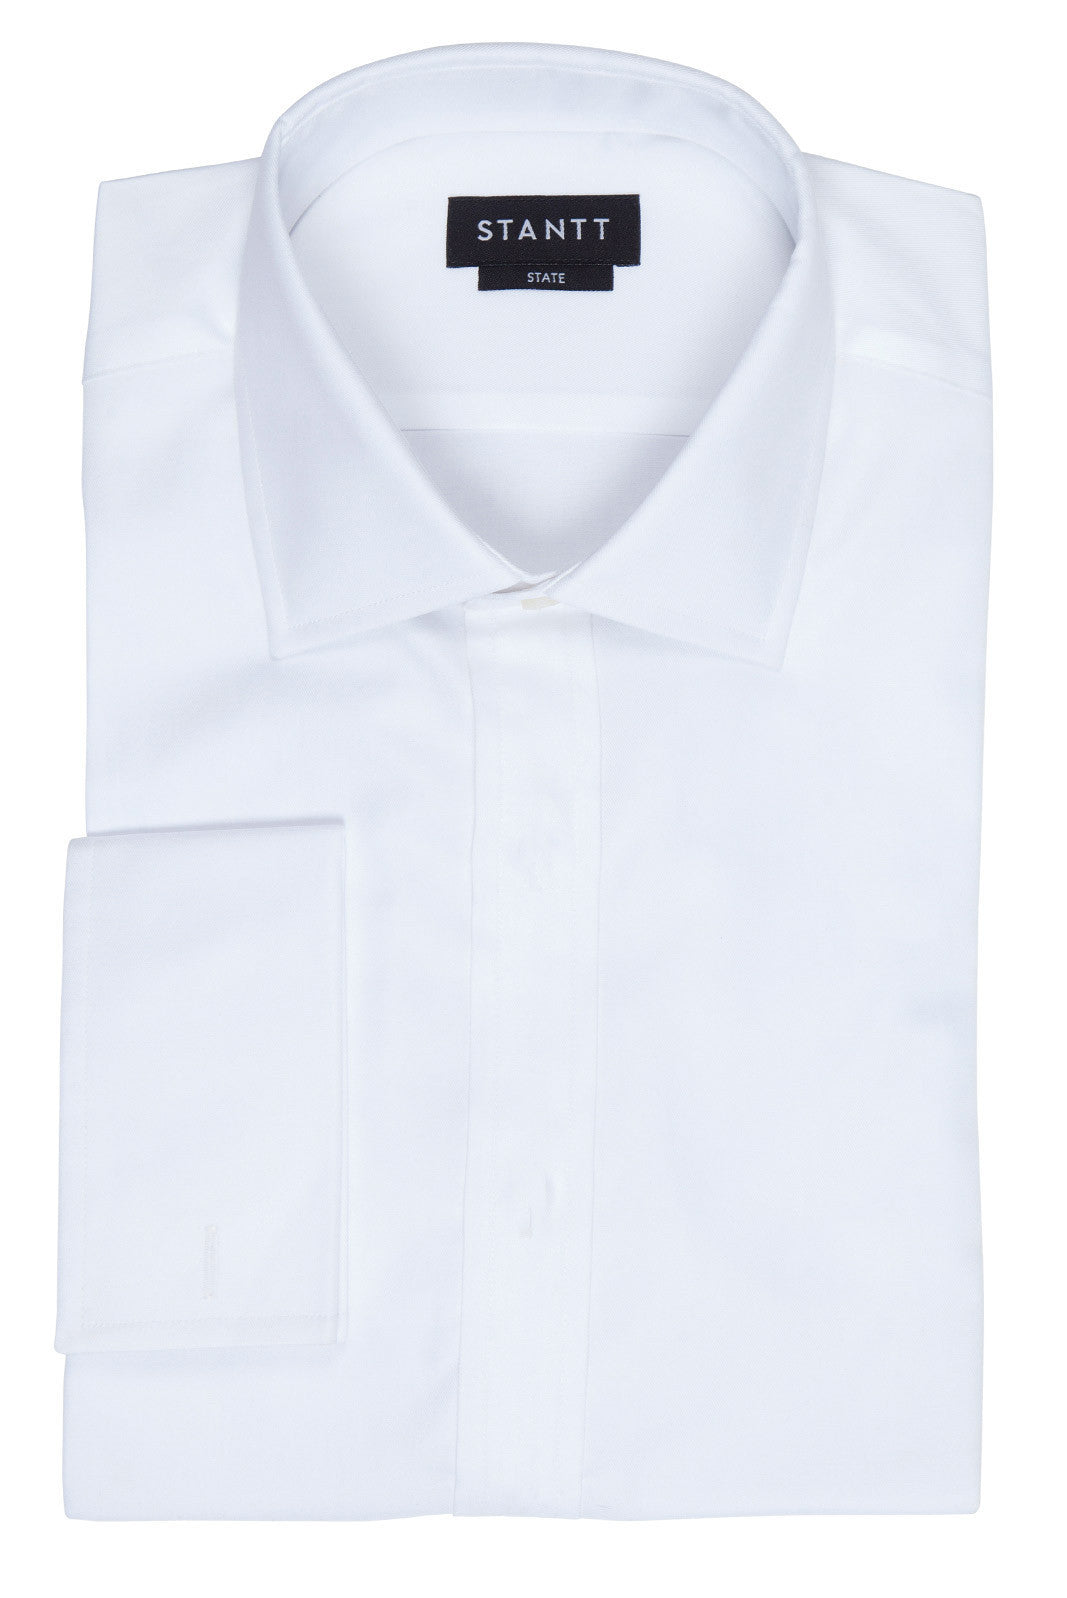 Fine White Twill Formal Shirt: Modified-Spread Collar, Barrel Cuff, Hidden Placket